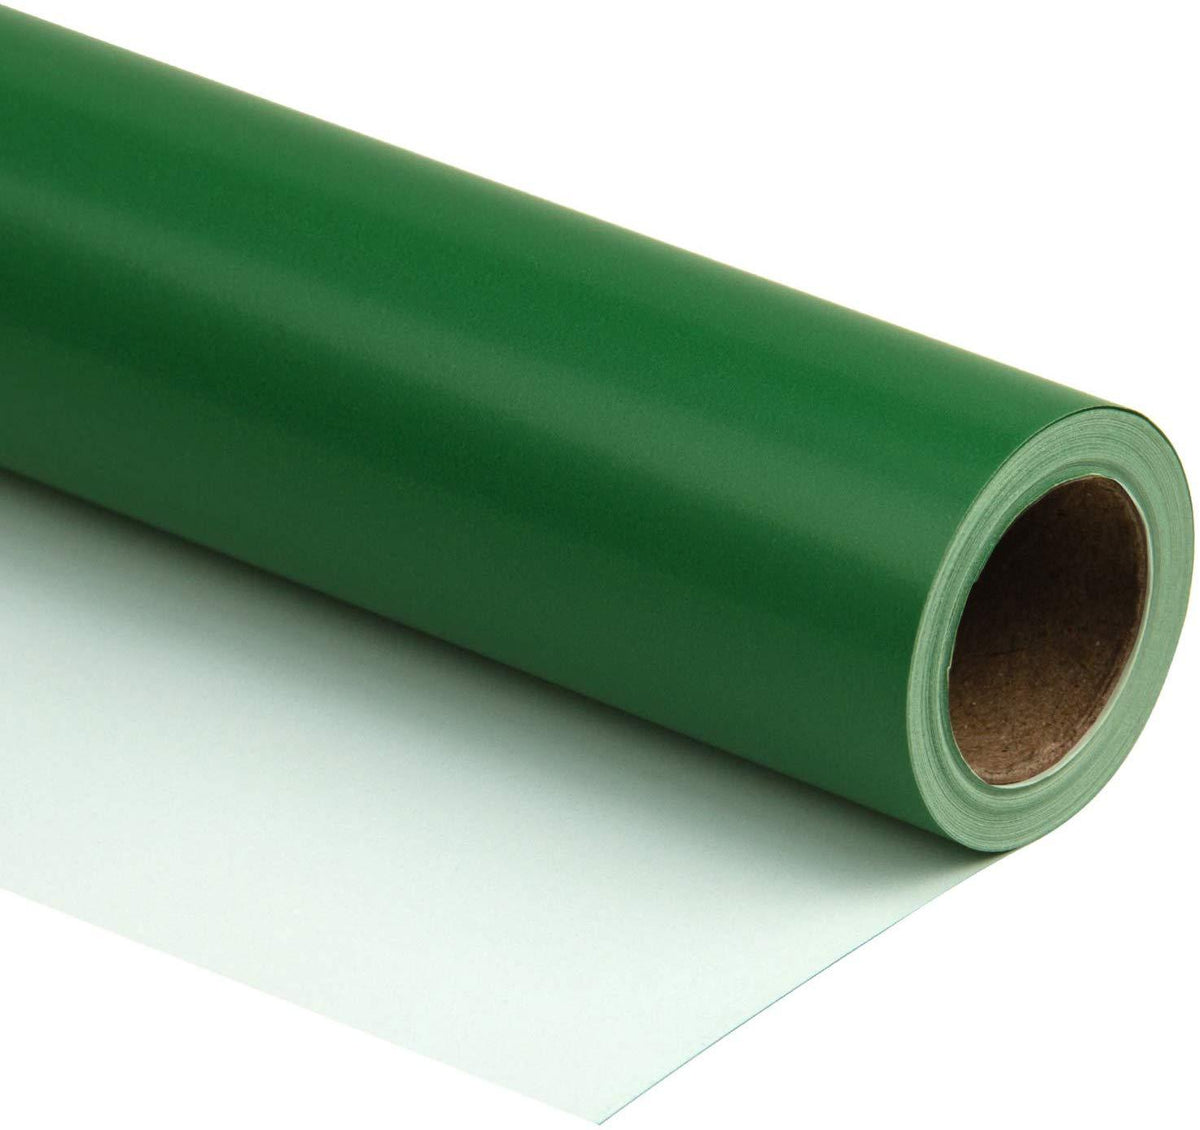 wrapaholic-glossy-green-gift-wrap-roll-m